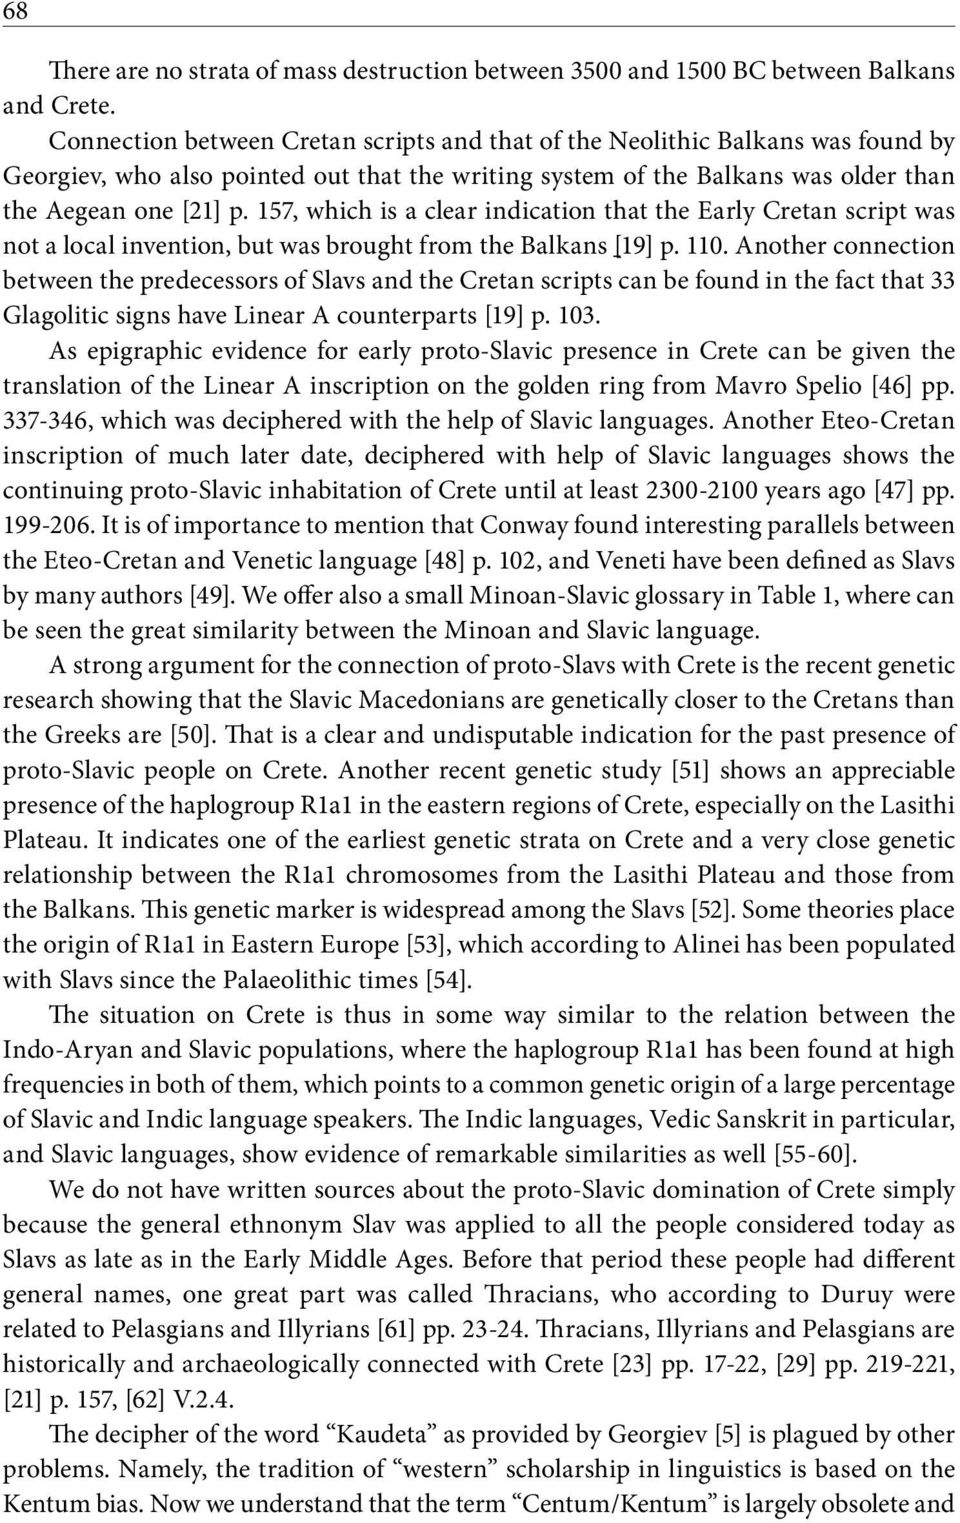 157, which is a clear indication that the Early Cretan script was not a local invention, but was brought from the Balkans [19] p. 110.